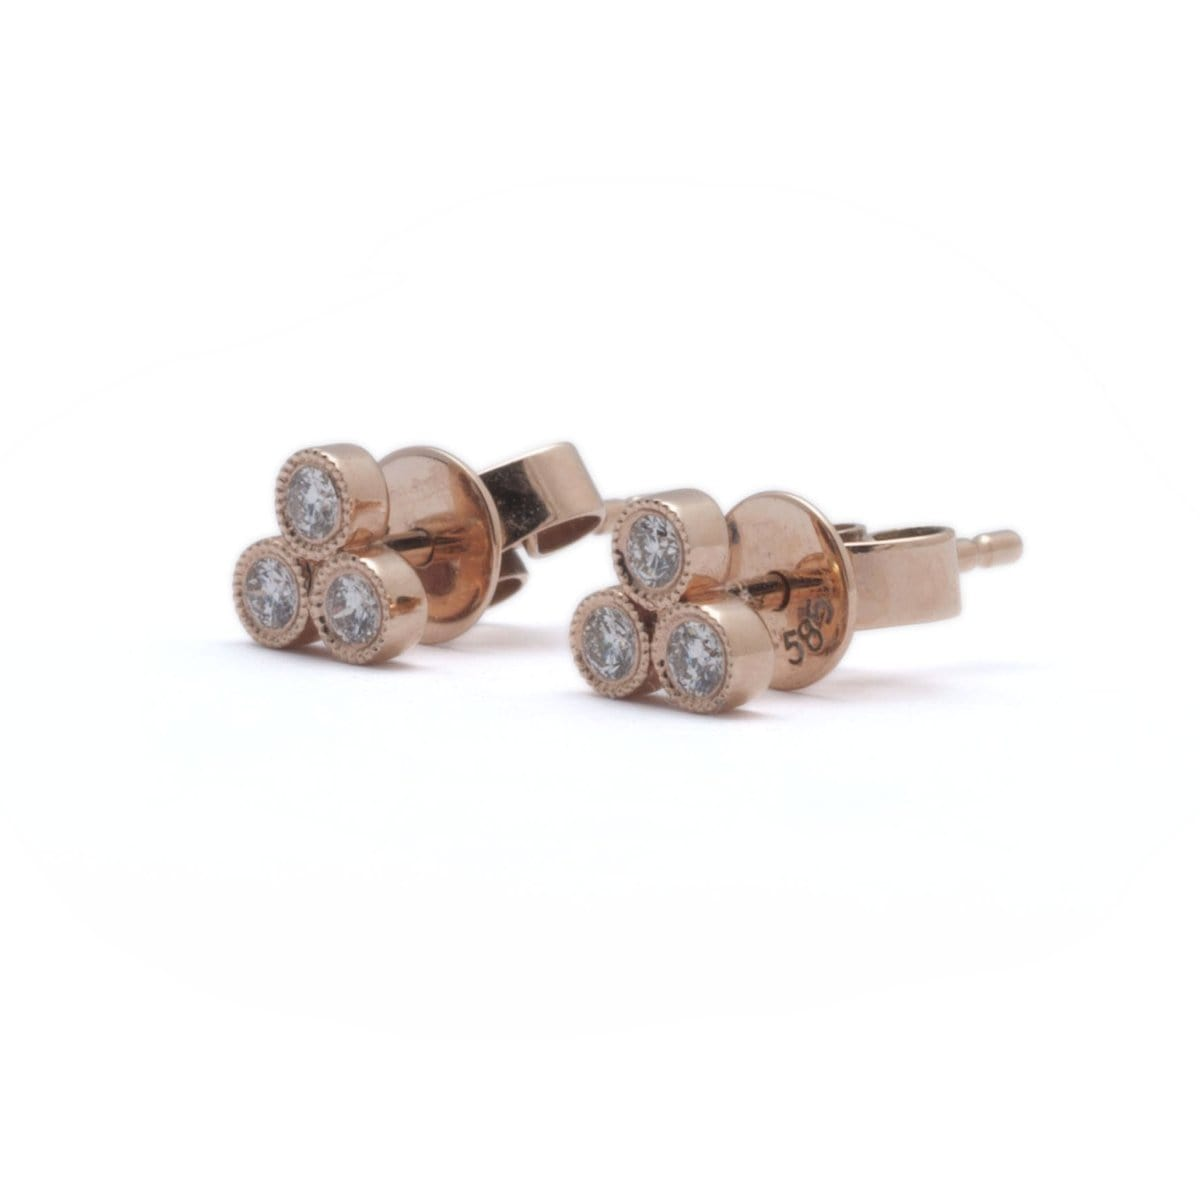 lyst rose stud pomellato view fullscreen diamond gold sabbia brown earrings jewelry